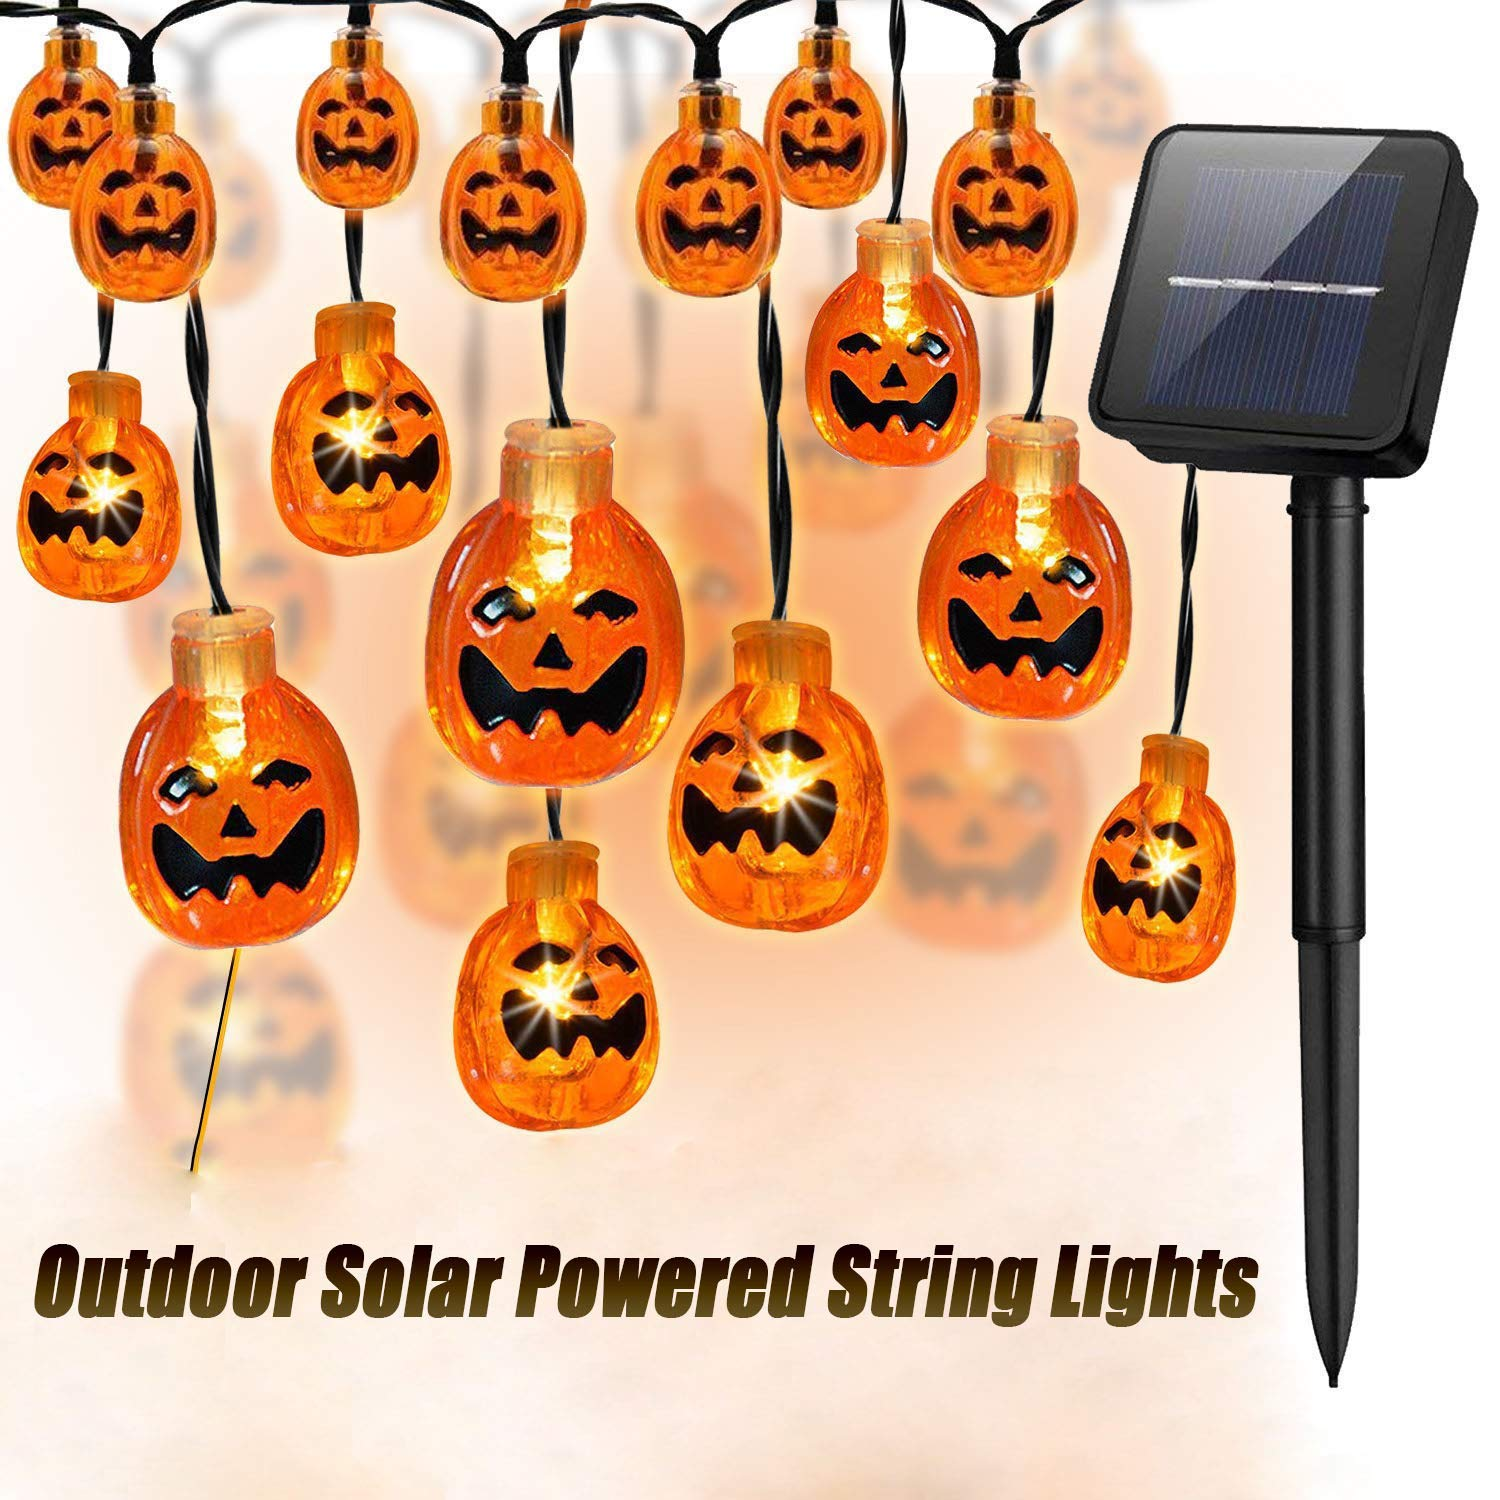 Ausein 3D Halloween Pumpkin String Lights, 19.7ft 30 LED Solar Powered Outdoor Waterproof Pumpkin Light for Home Patio Garden Yard Decoration - Warm White